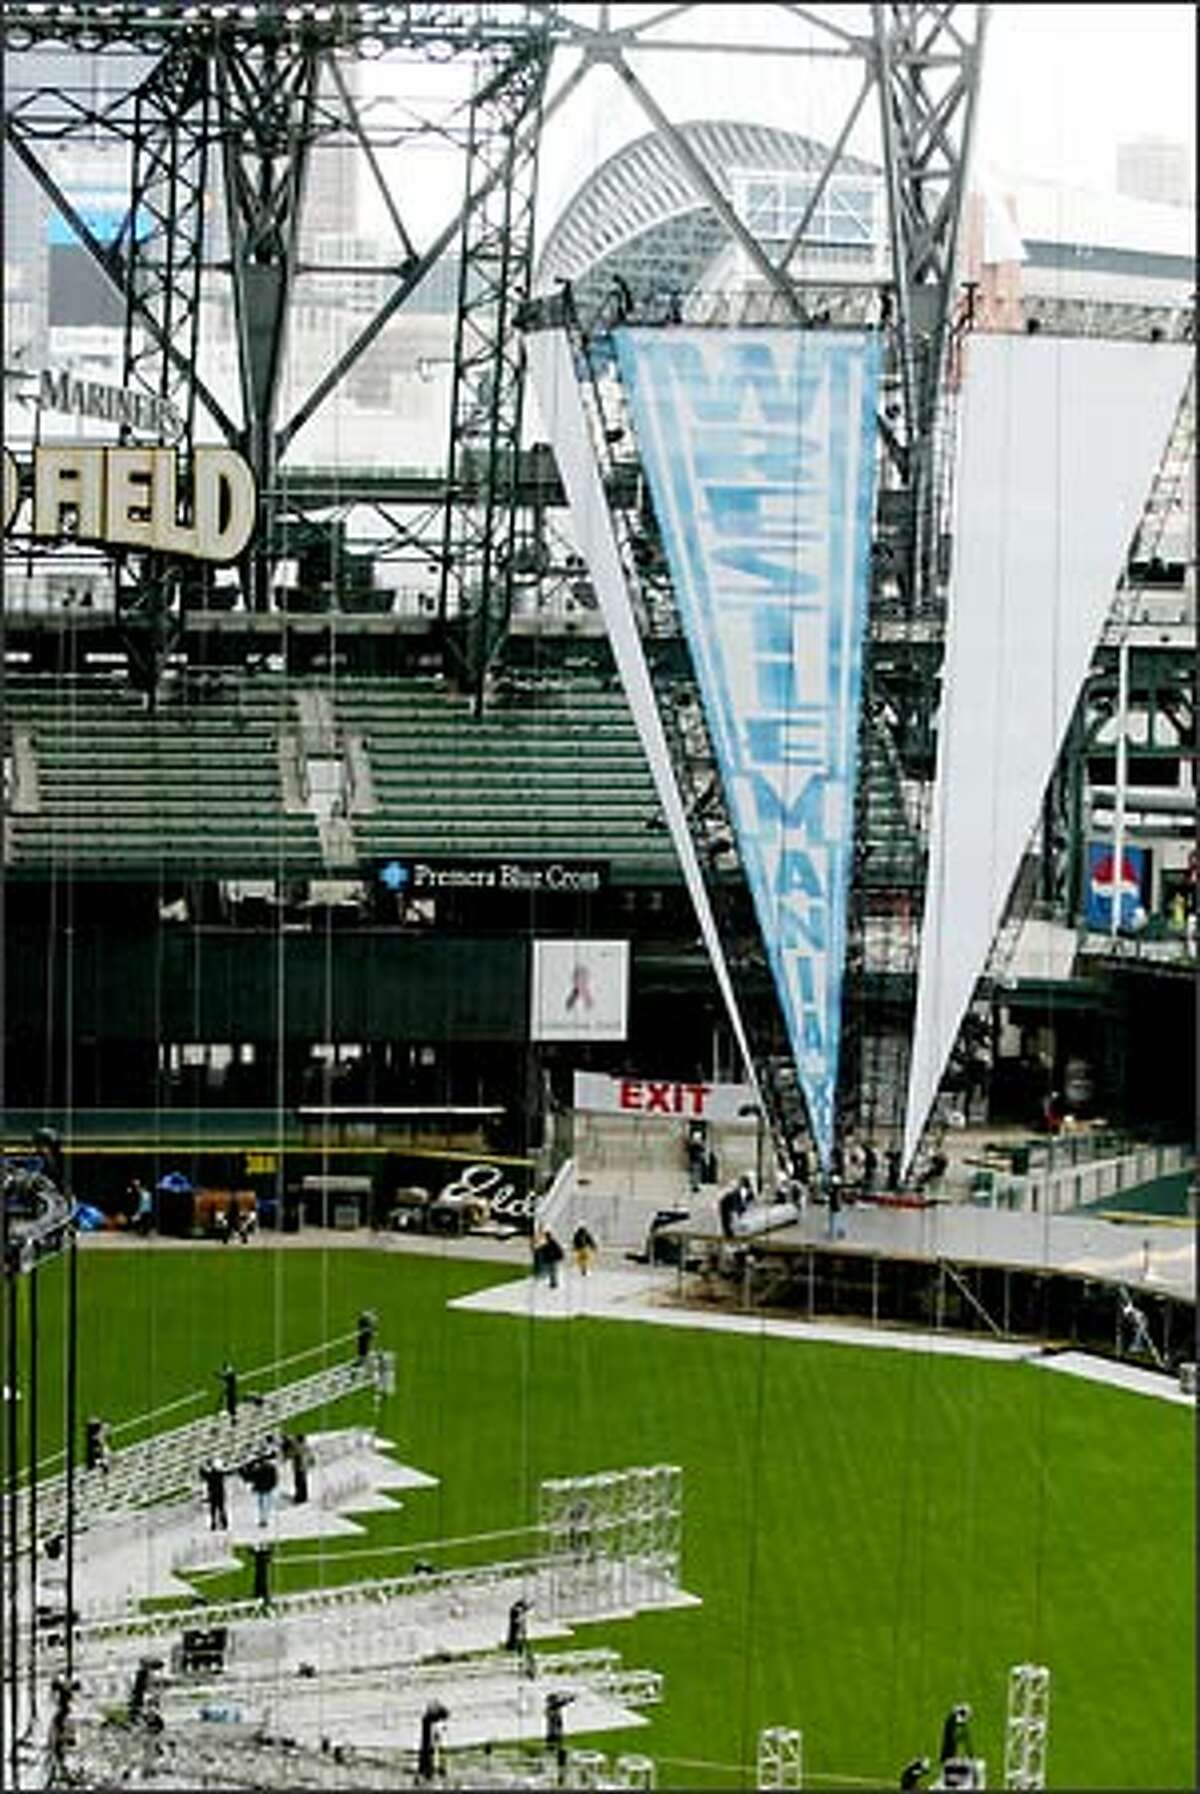 Workmen set up the WrestleMania XIX at Safeco Field. It takes 14 trucks to carry all the gear. The primary WWE road crew is responsible for 104 television shows and 12 pay-per-view events each year.